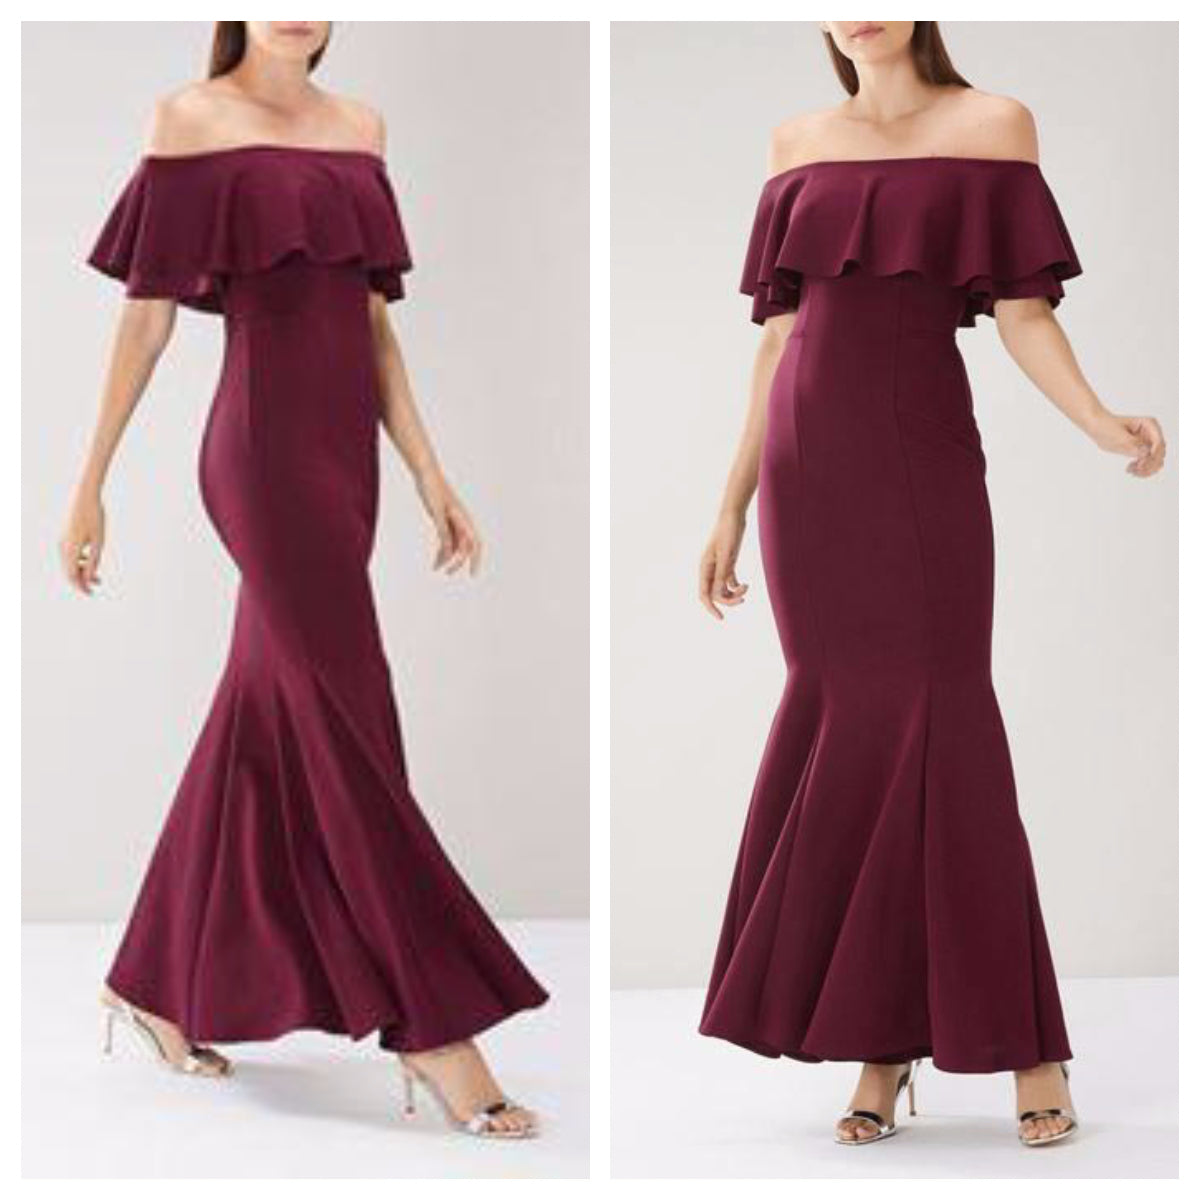 Maroon Scuba Off Shoulder Frill Maxi Dress